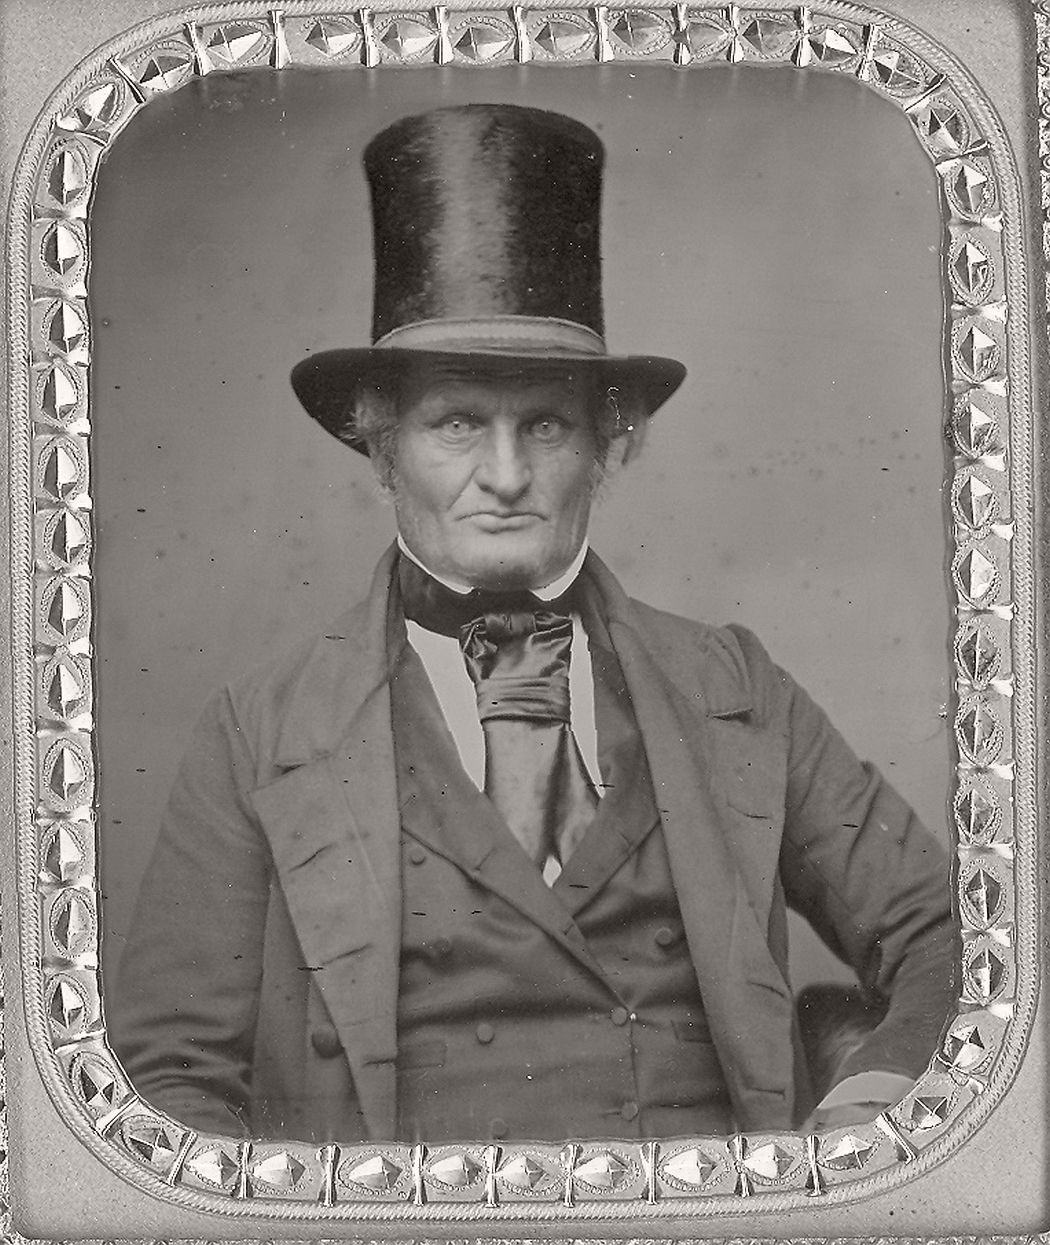 victorian-era-daguerreotype-of-men-in-hat-1850s-xix-century-04